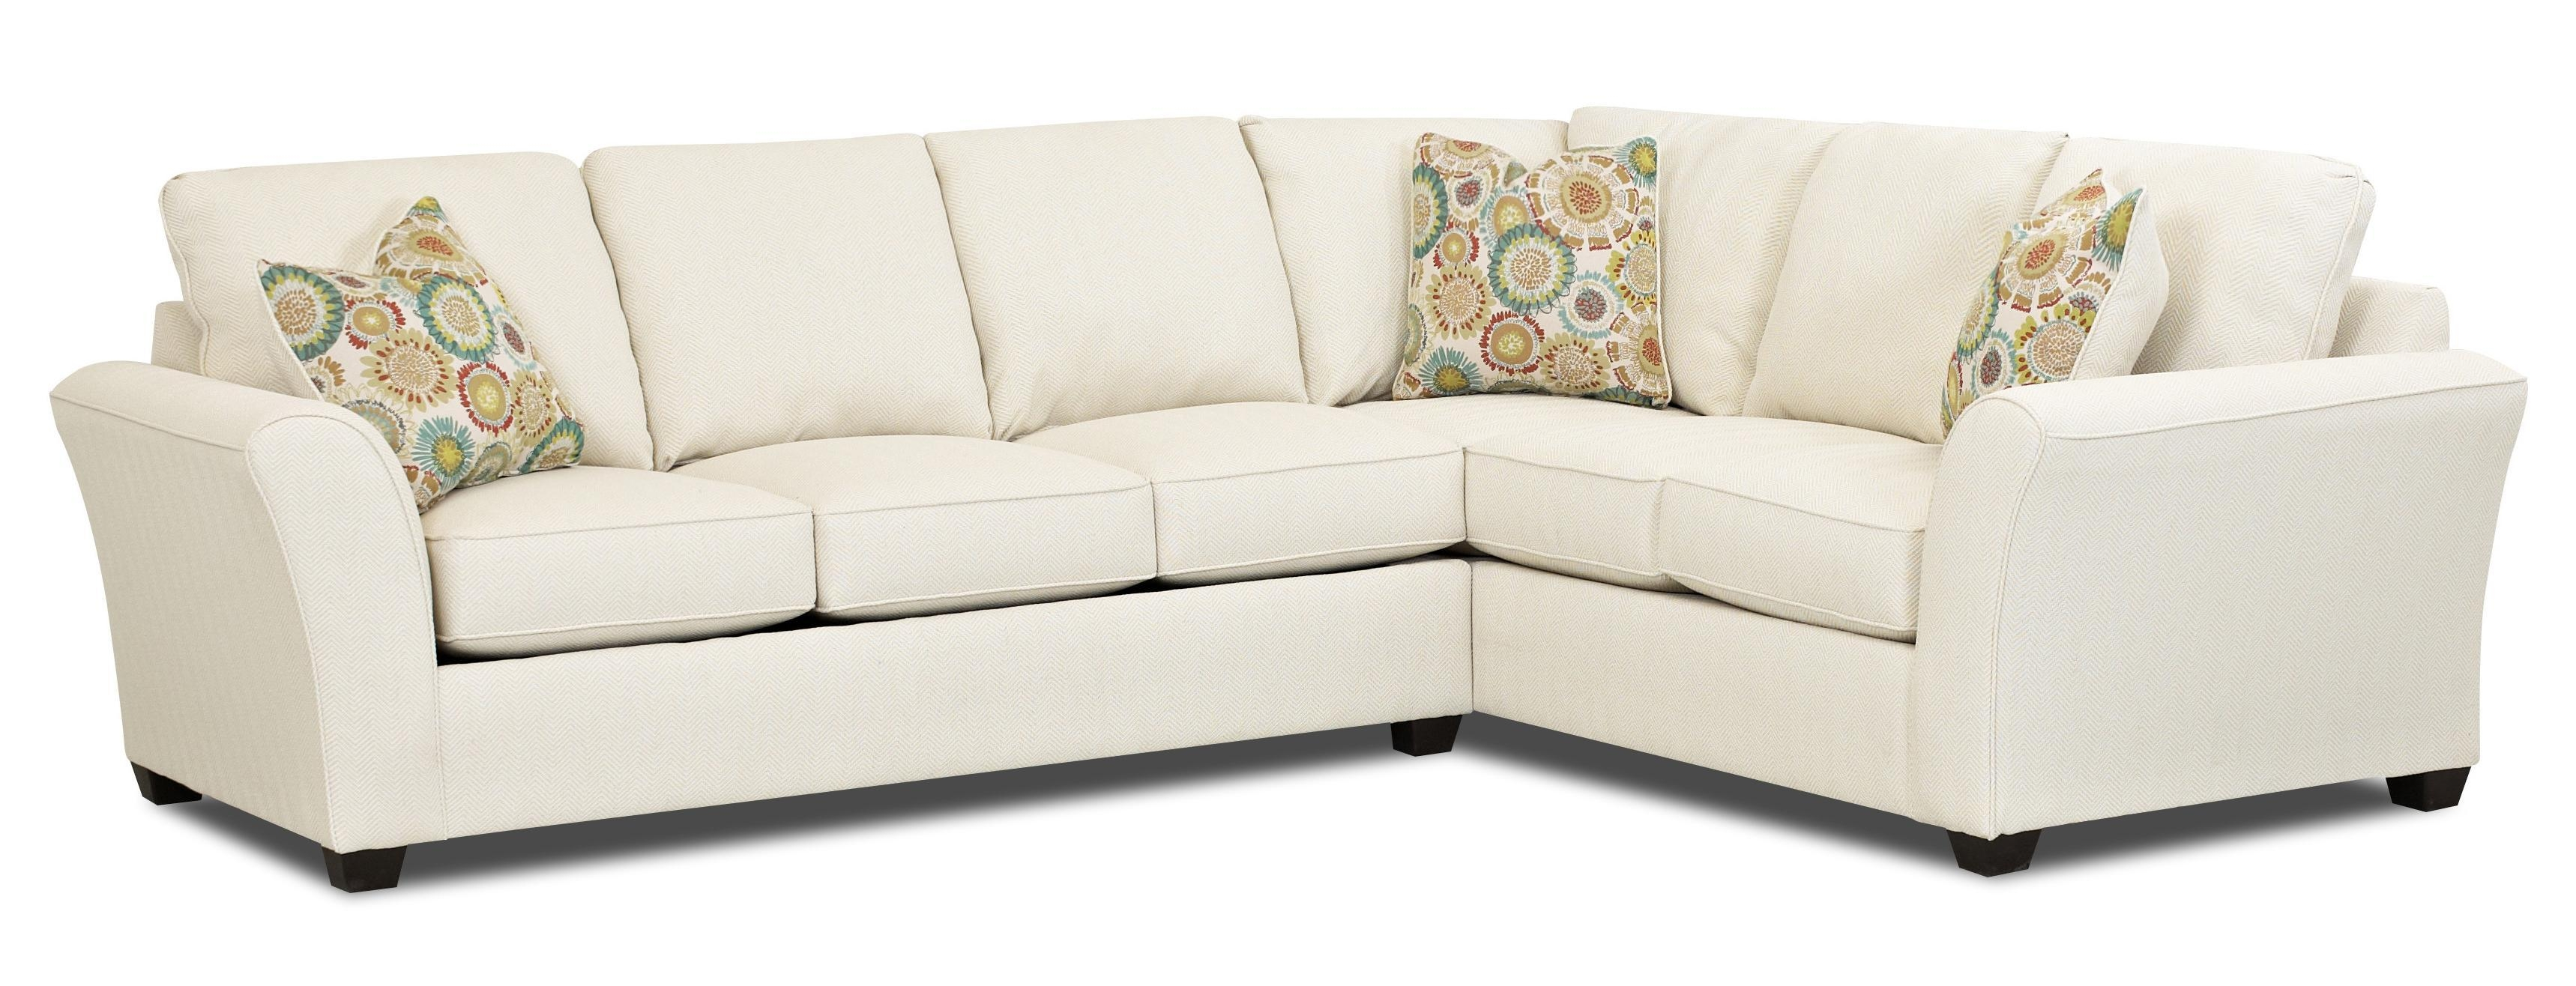 Sectional Sofas Under  (Image 12 of 20)